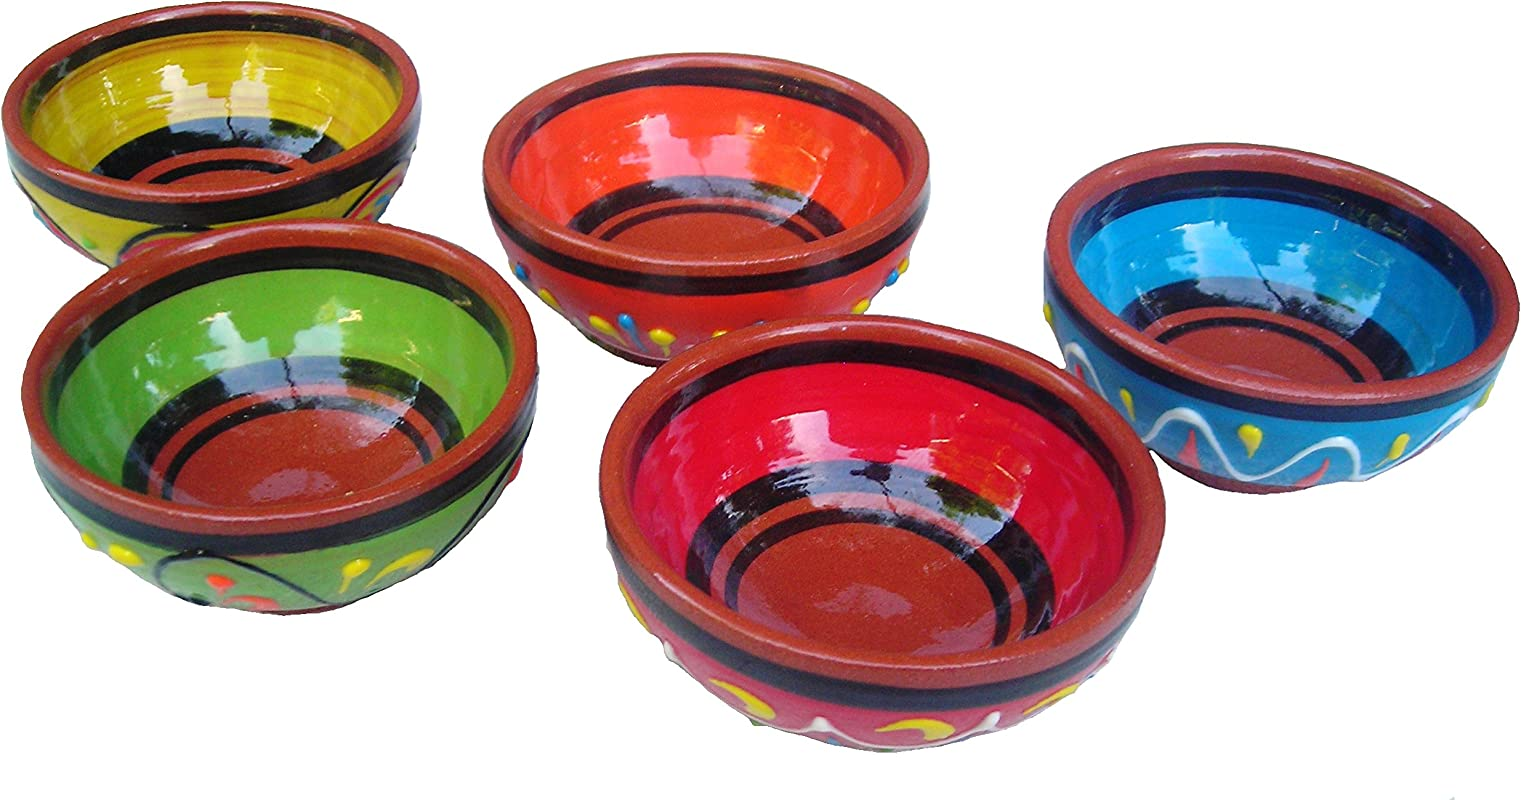 Cactus Canyon Ceramics Terracotta Super Small Mini Bowl Set Of 5 Pinch Bowls Hand Painted From Spain